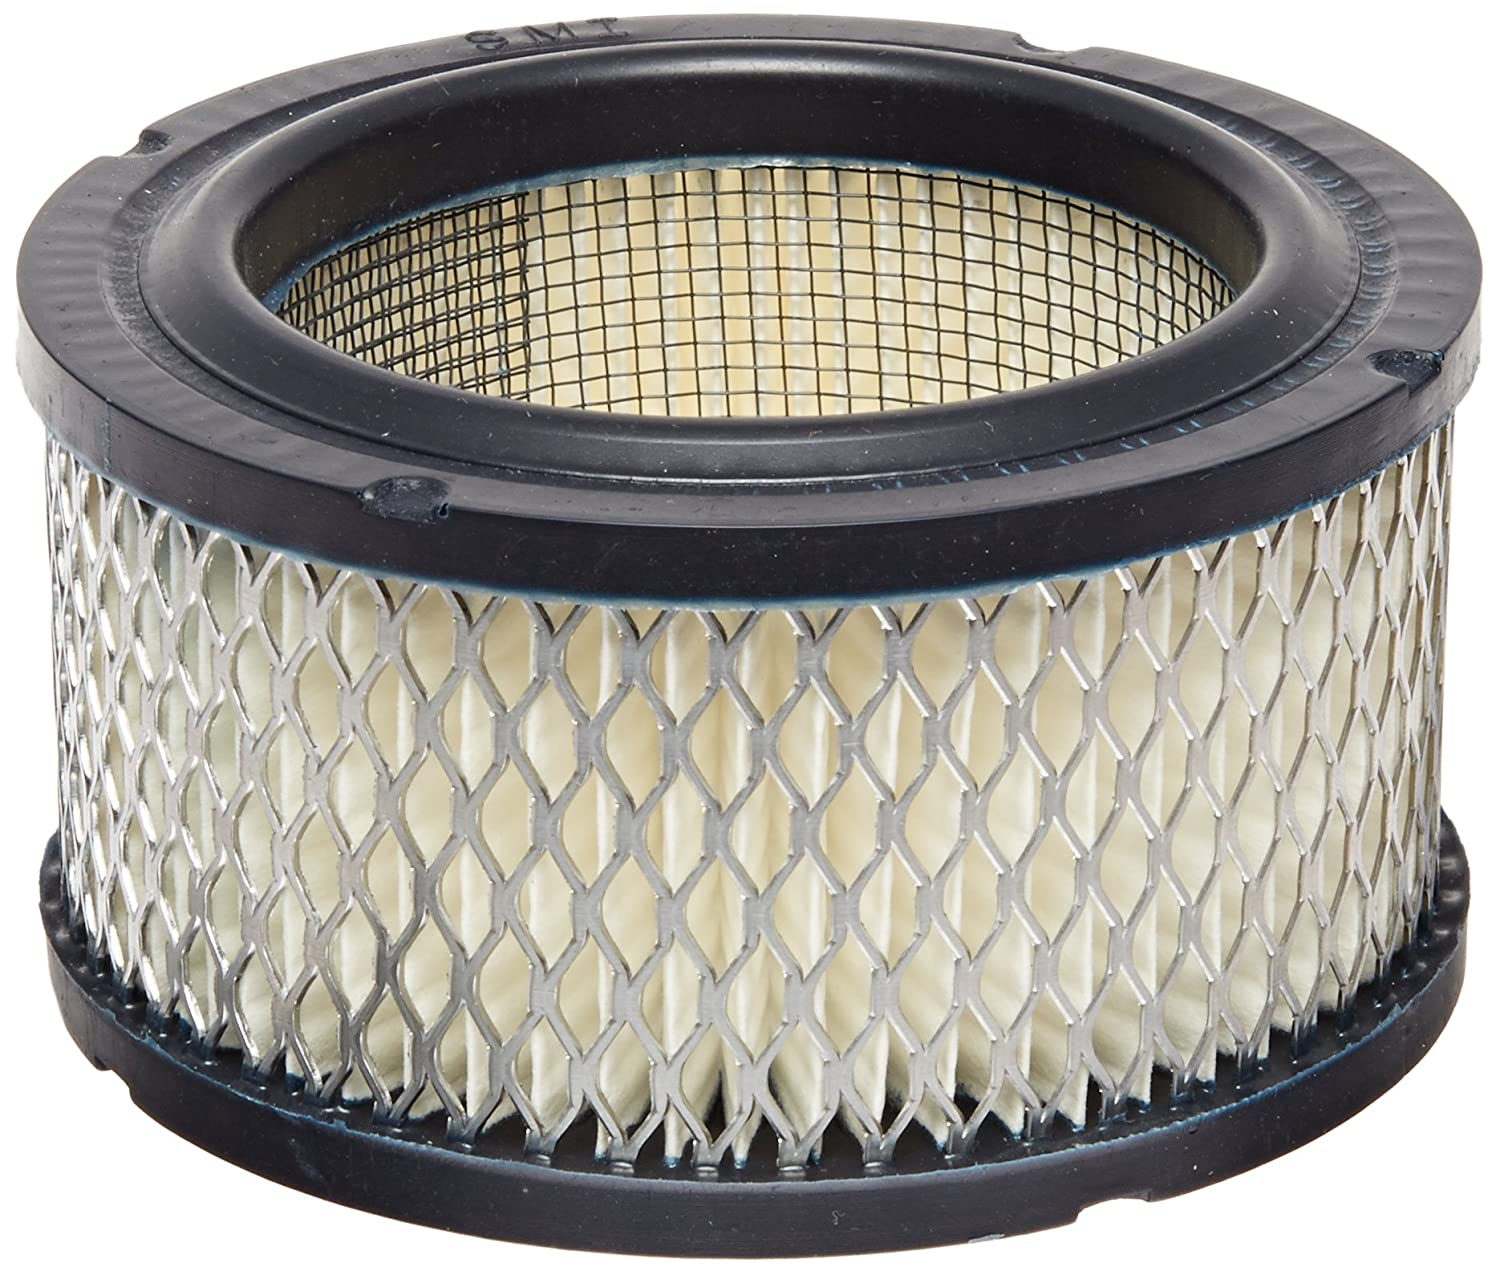 Solberg Cheap mail order specialty store 14 Paper Filter Cartridge Compressor Height 16